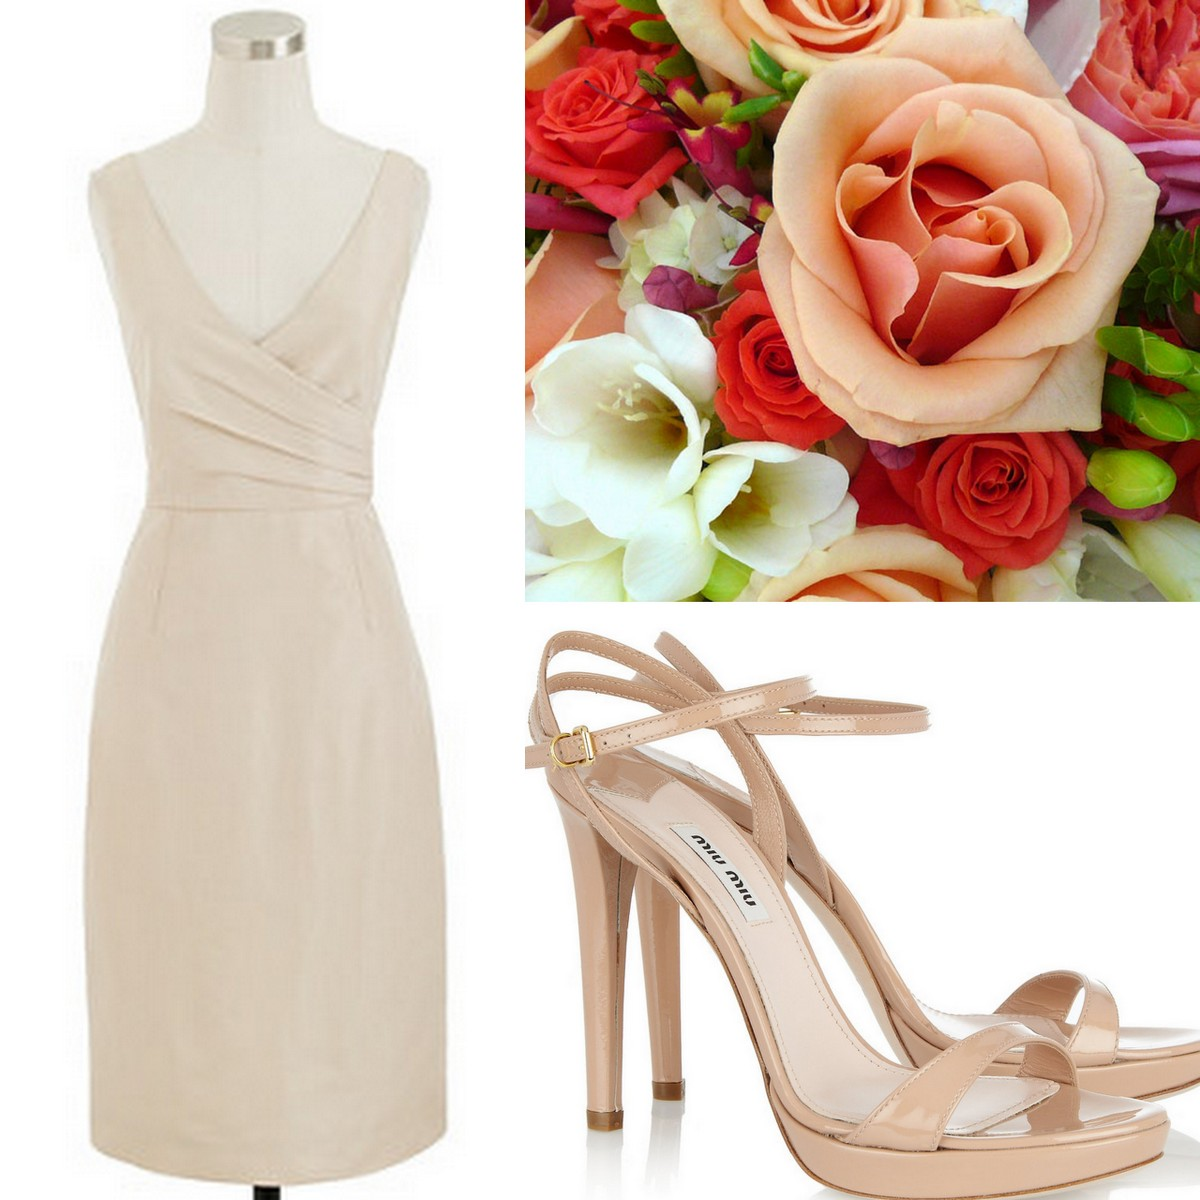 Style, Inspiration, & Design Beige J.Crew V-neck Bridesmaid dress with Miu Miu Strappy Sandal & Mixed Red and Coral Bouquet